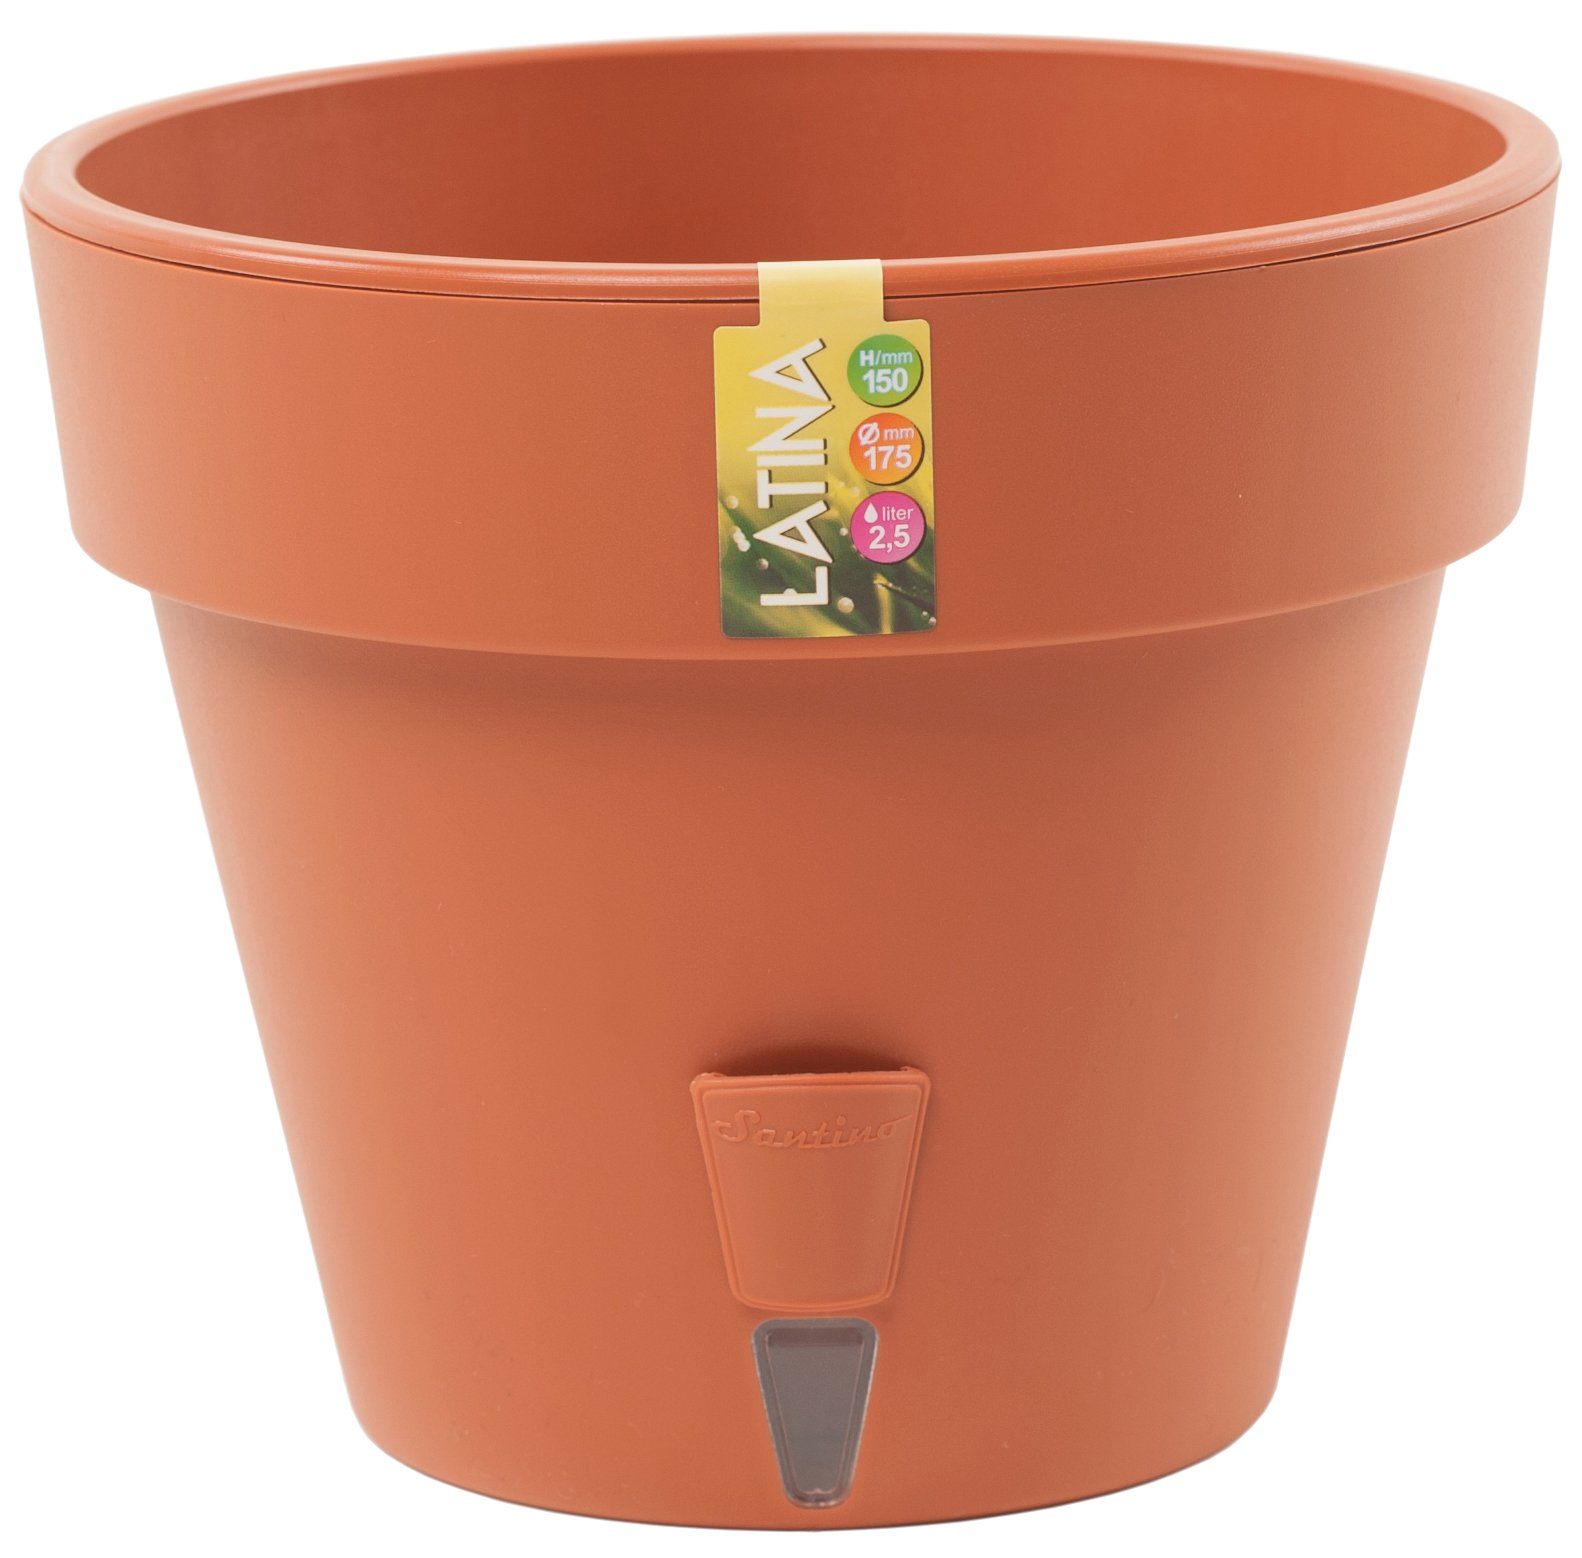 Bloem Llc Living Lp1260 Lucca Self Watering Planter 12 Inch